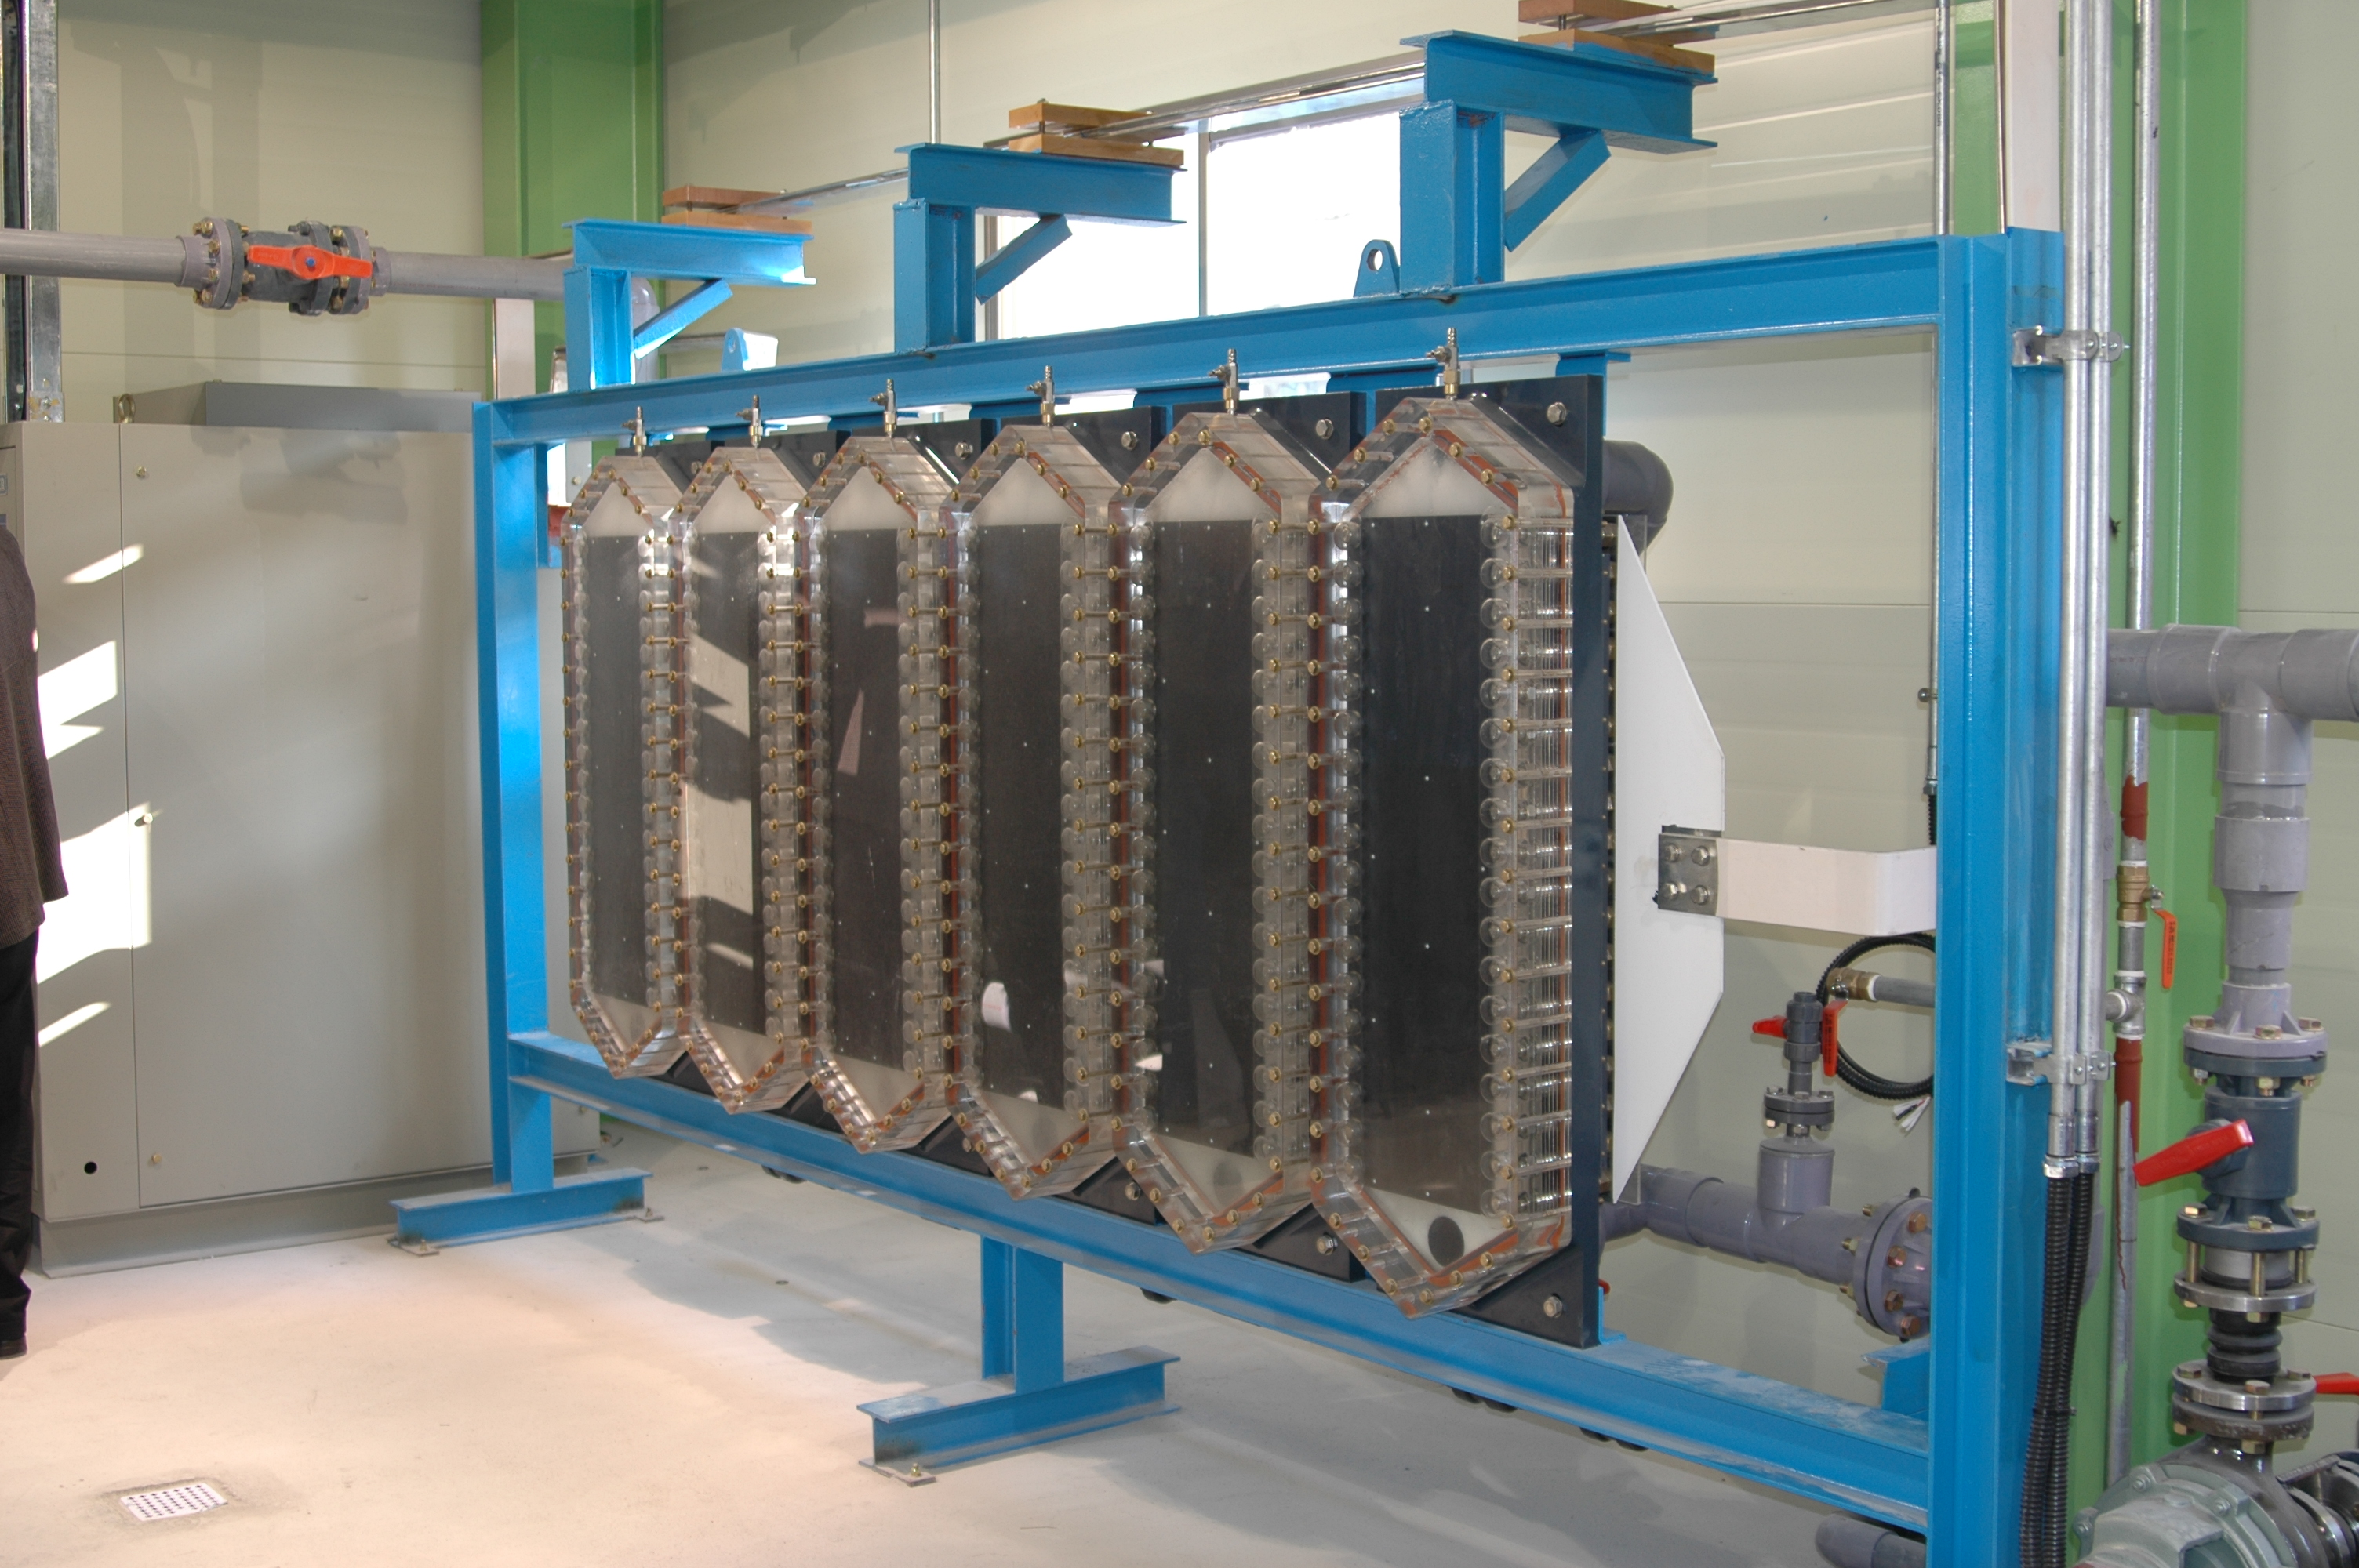 The Electro-chlorination System is a facility that obtains hypochlorite (NaOCI) by electrolyzing sea...